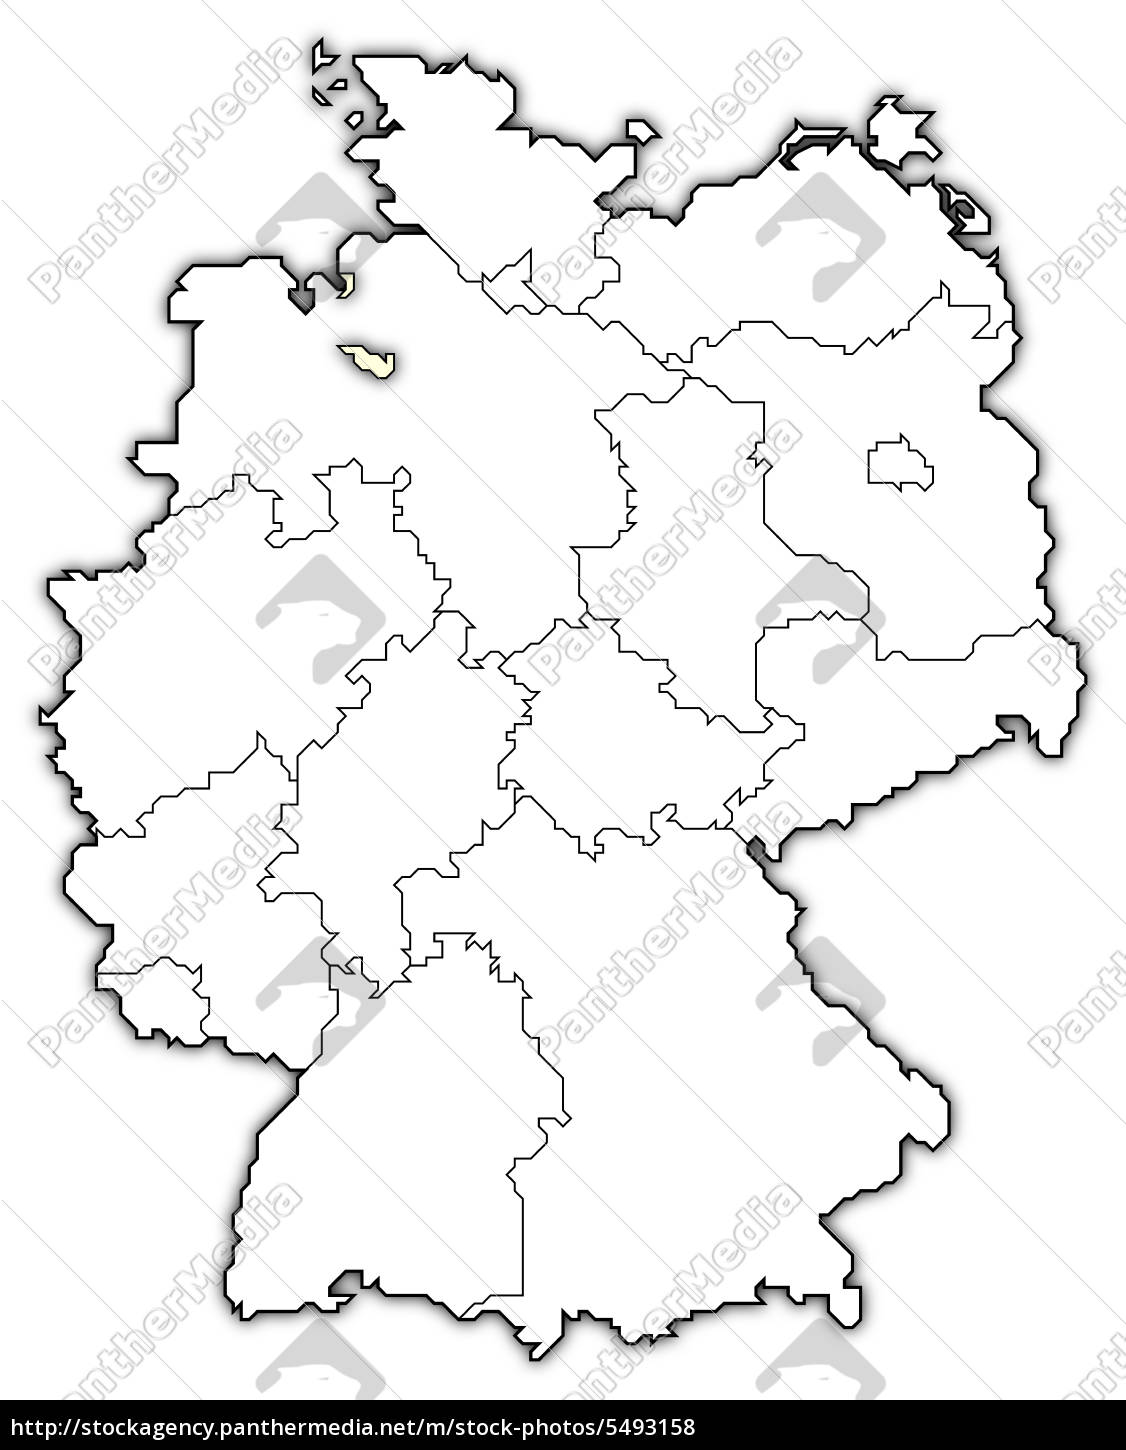 Map of Germany, Bremen highlighted - Stock Photo - #5493158 ...